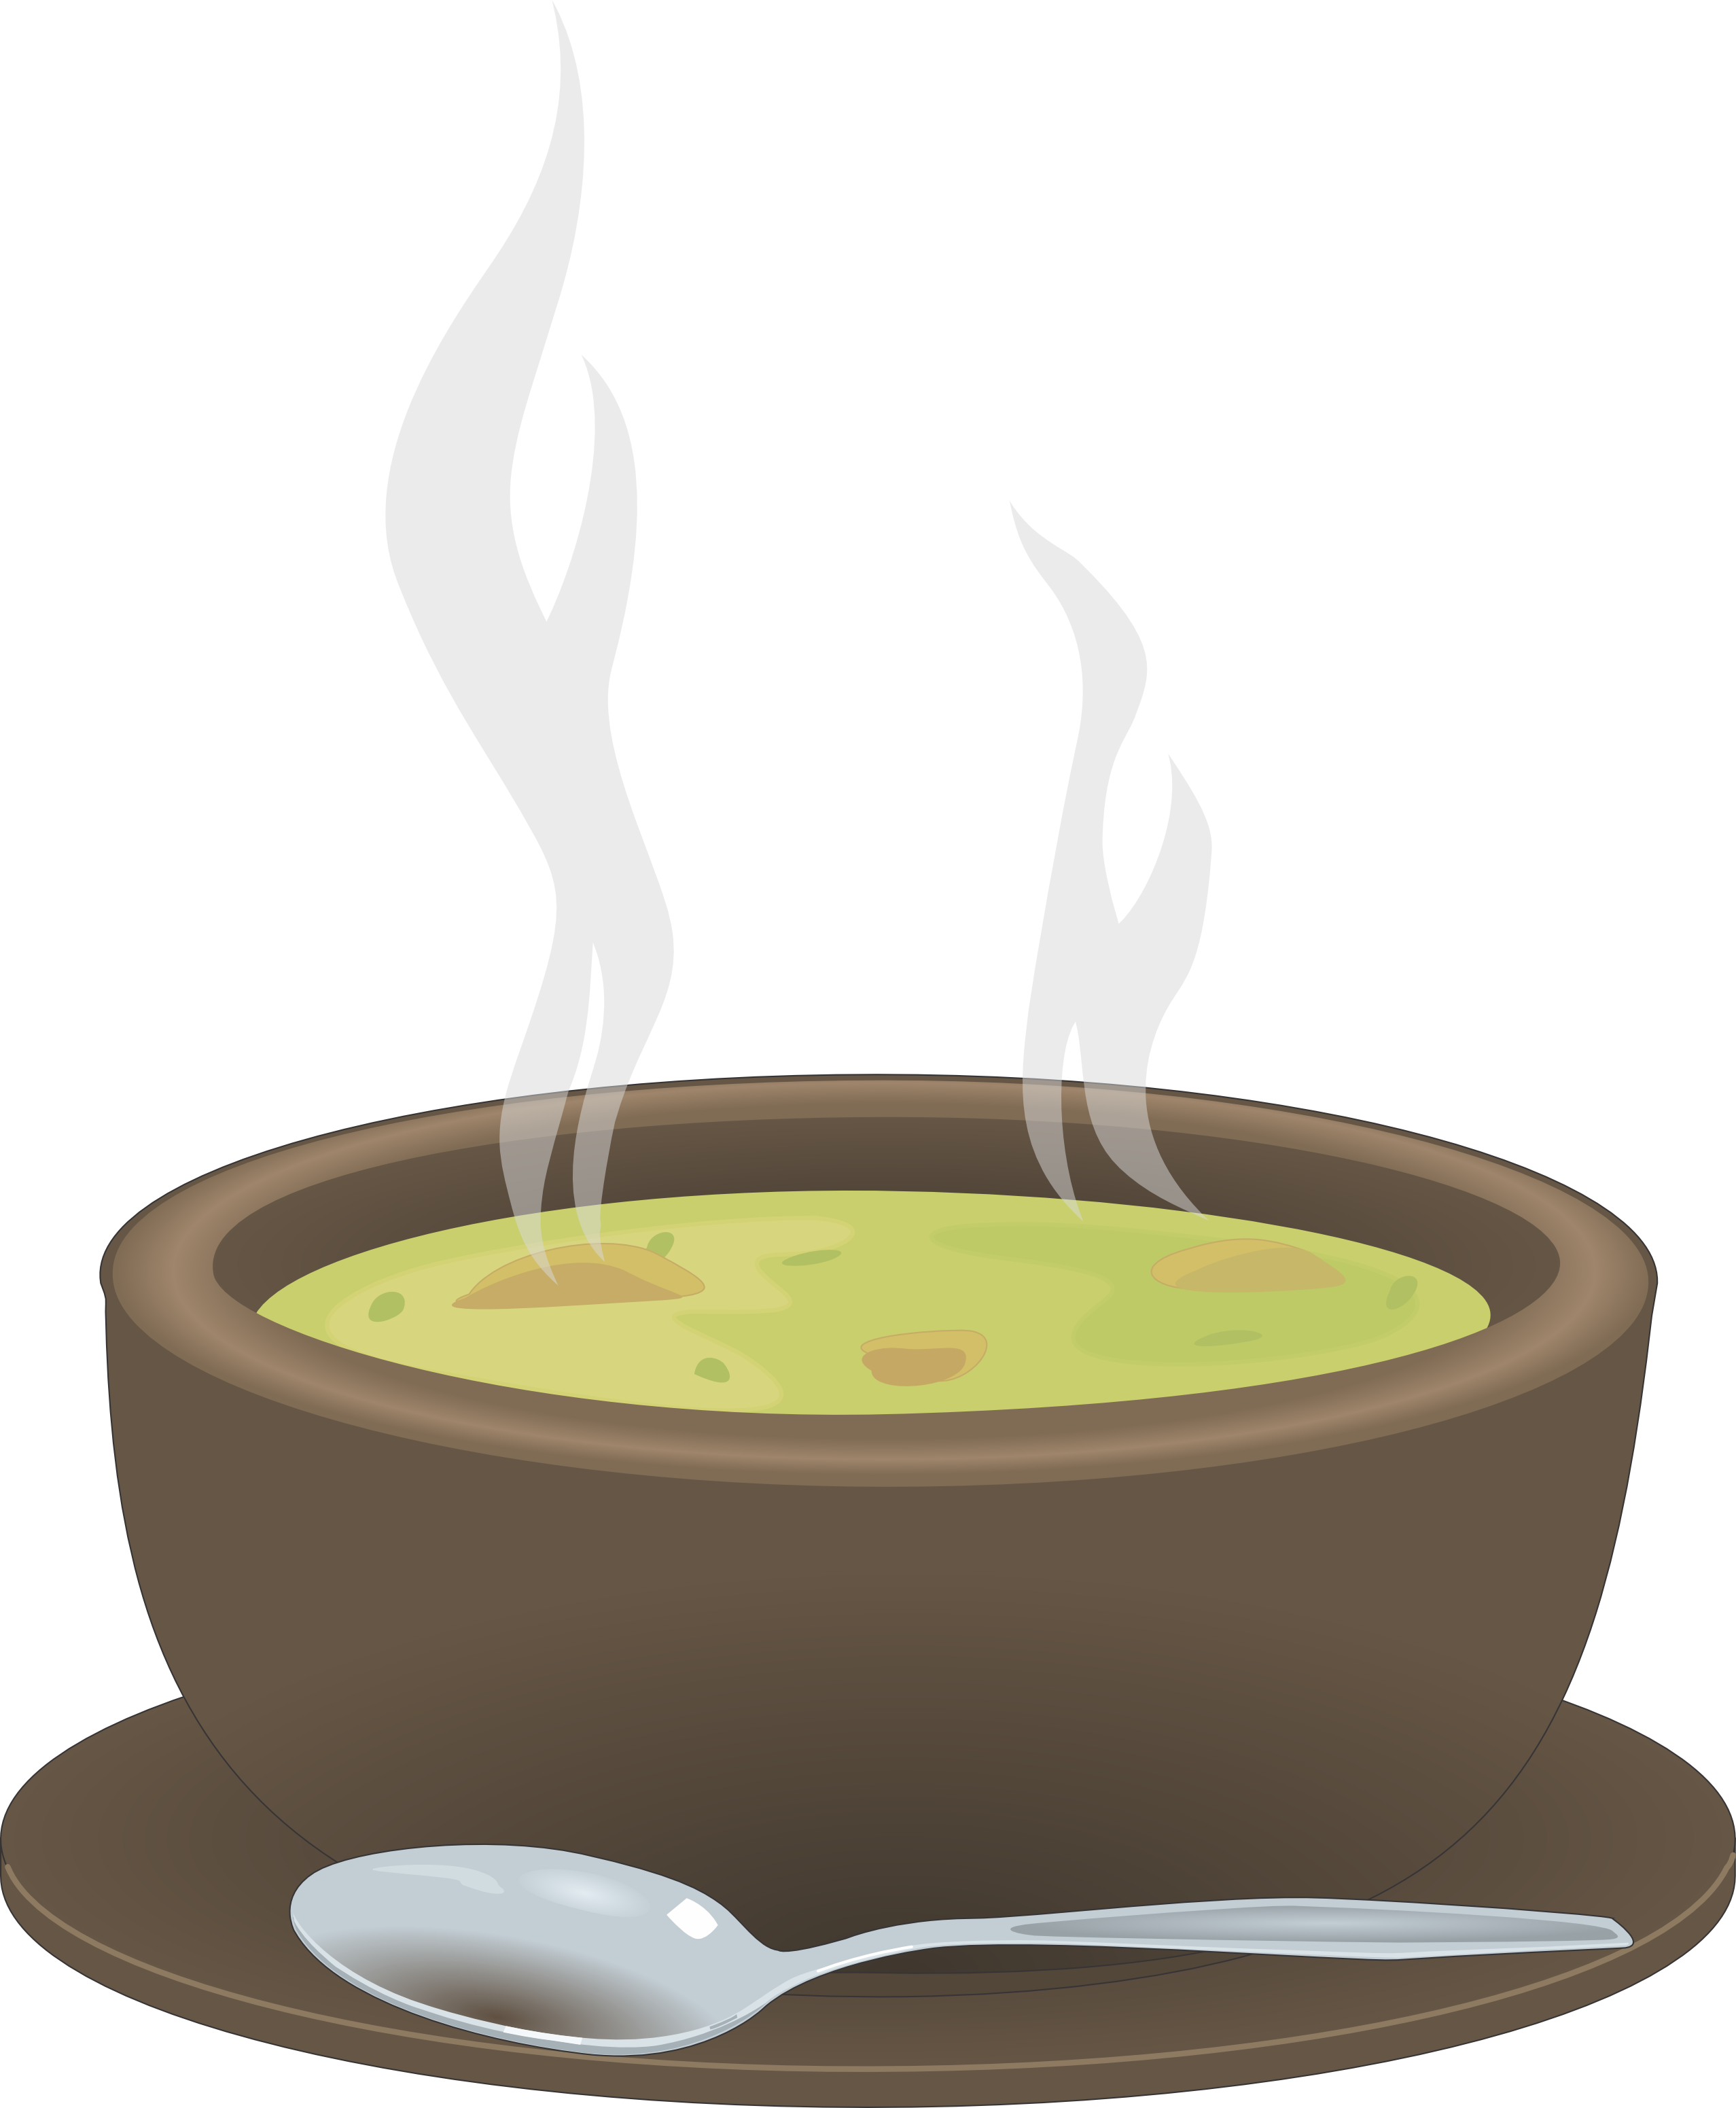 Broth clipart.